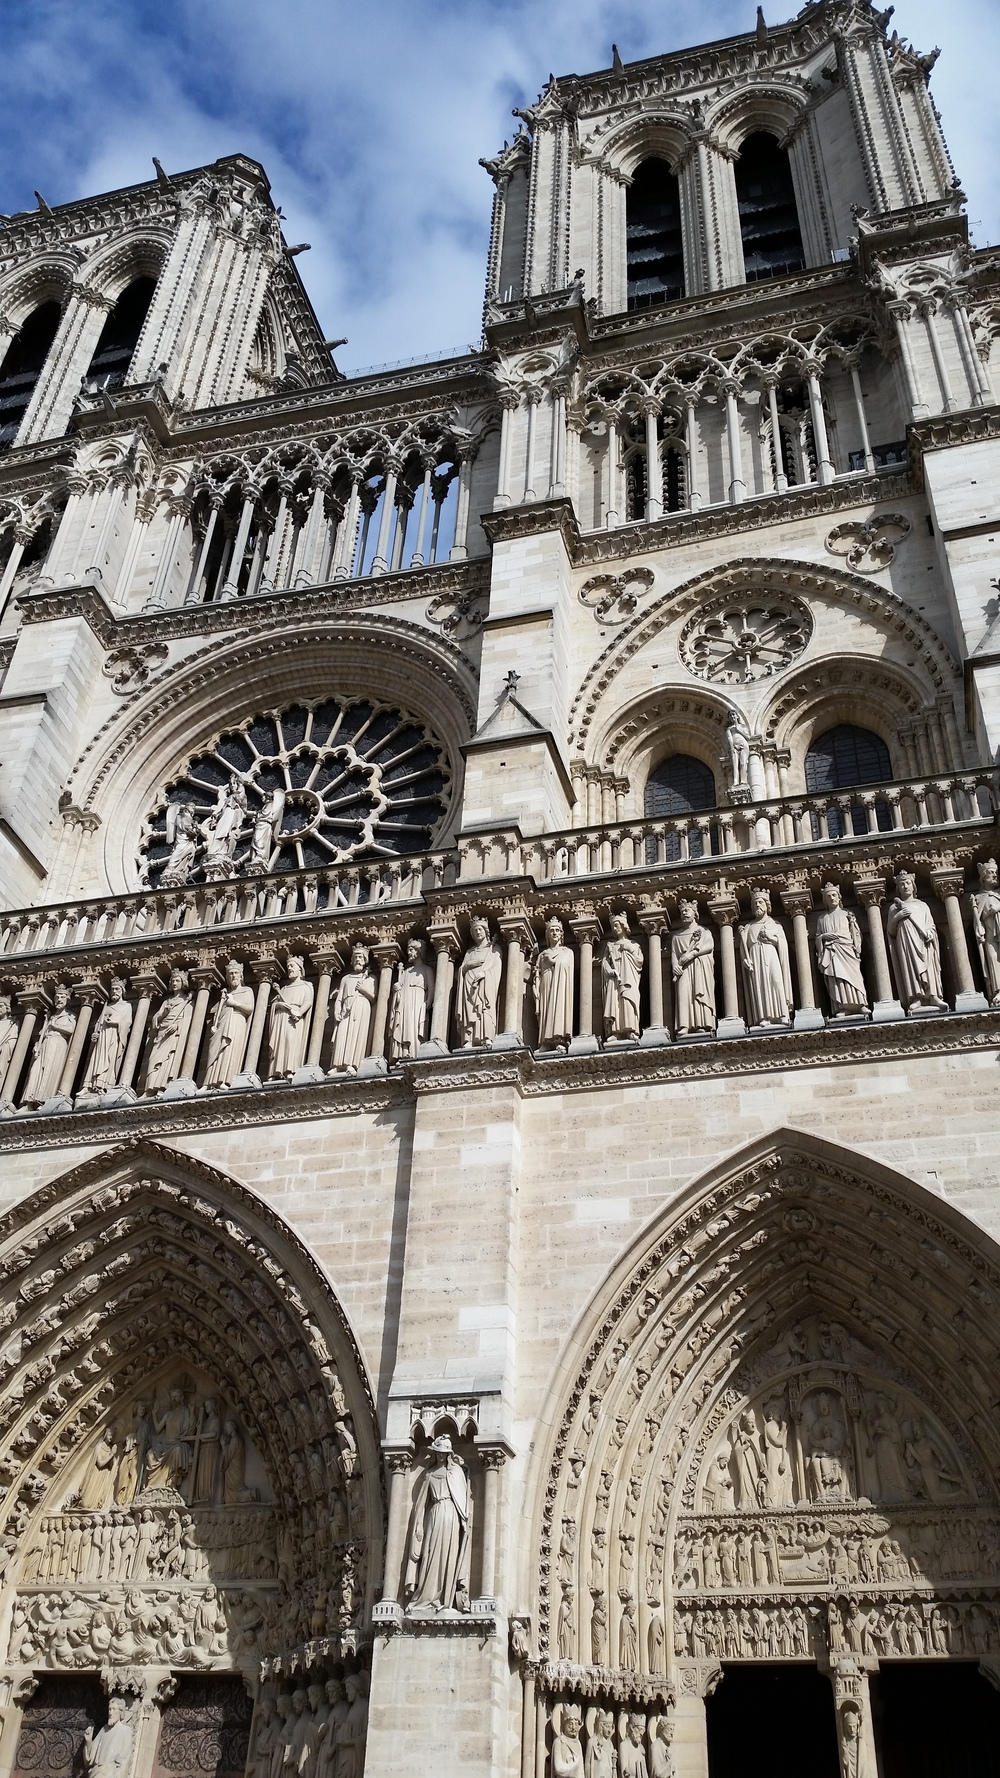 Entrance to the famous Notre Dame